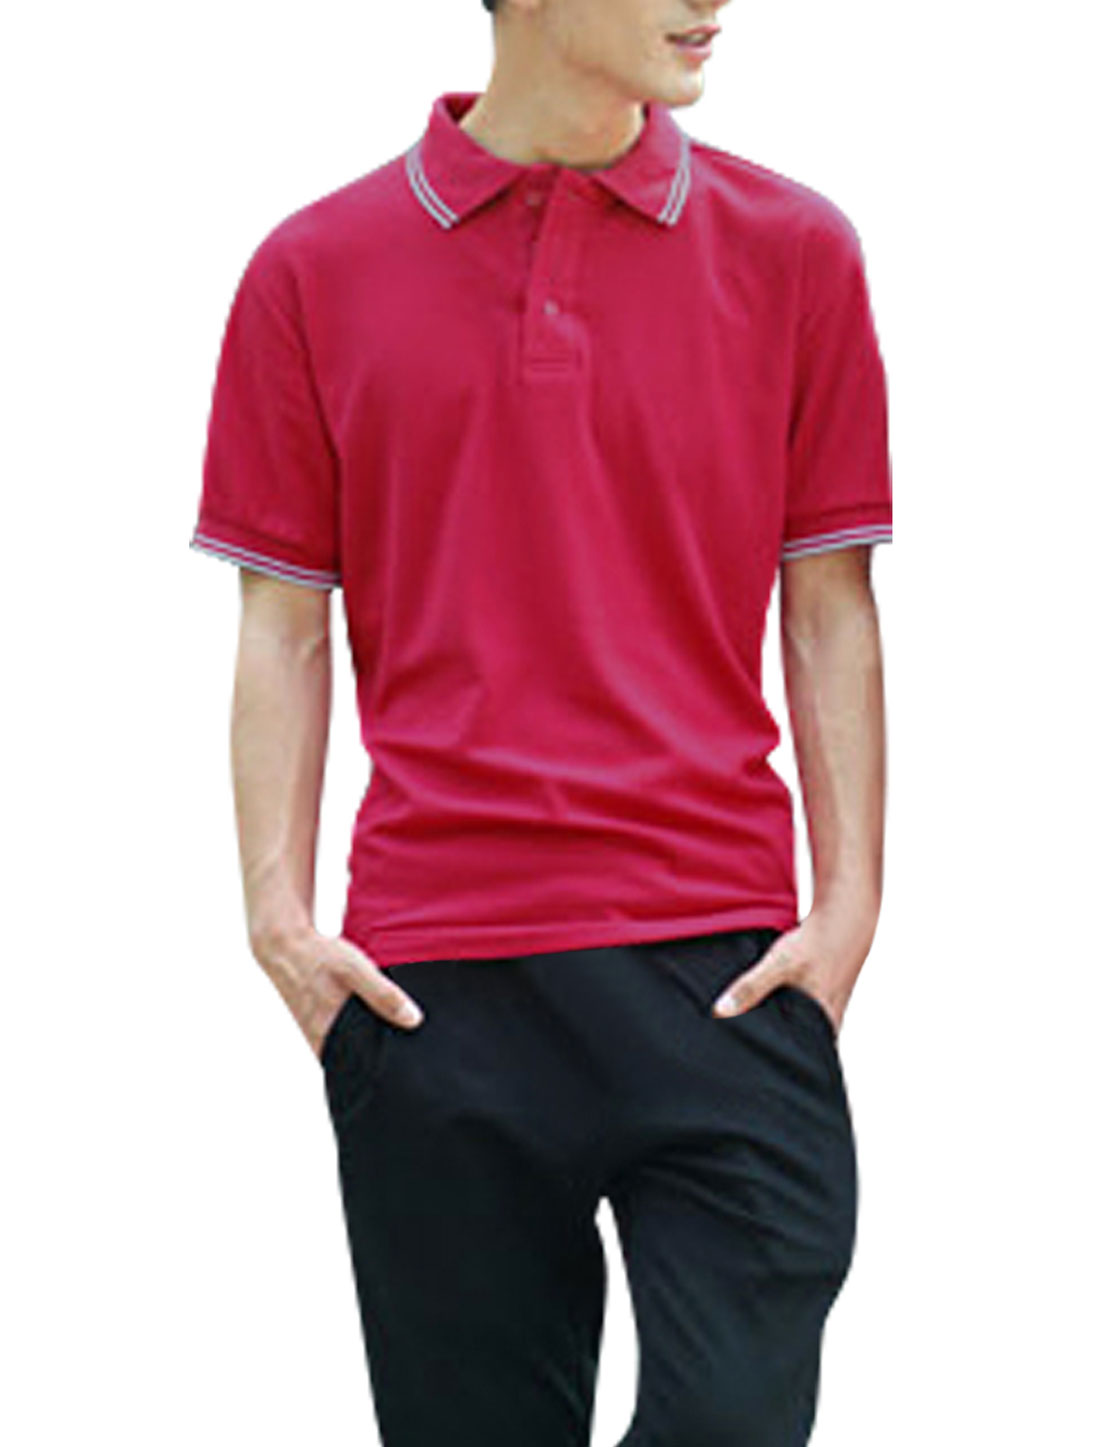 Men Convertible Collar Pullover Ribbing Cuffs Shirt Fuchsia L